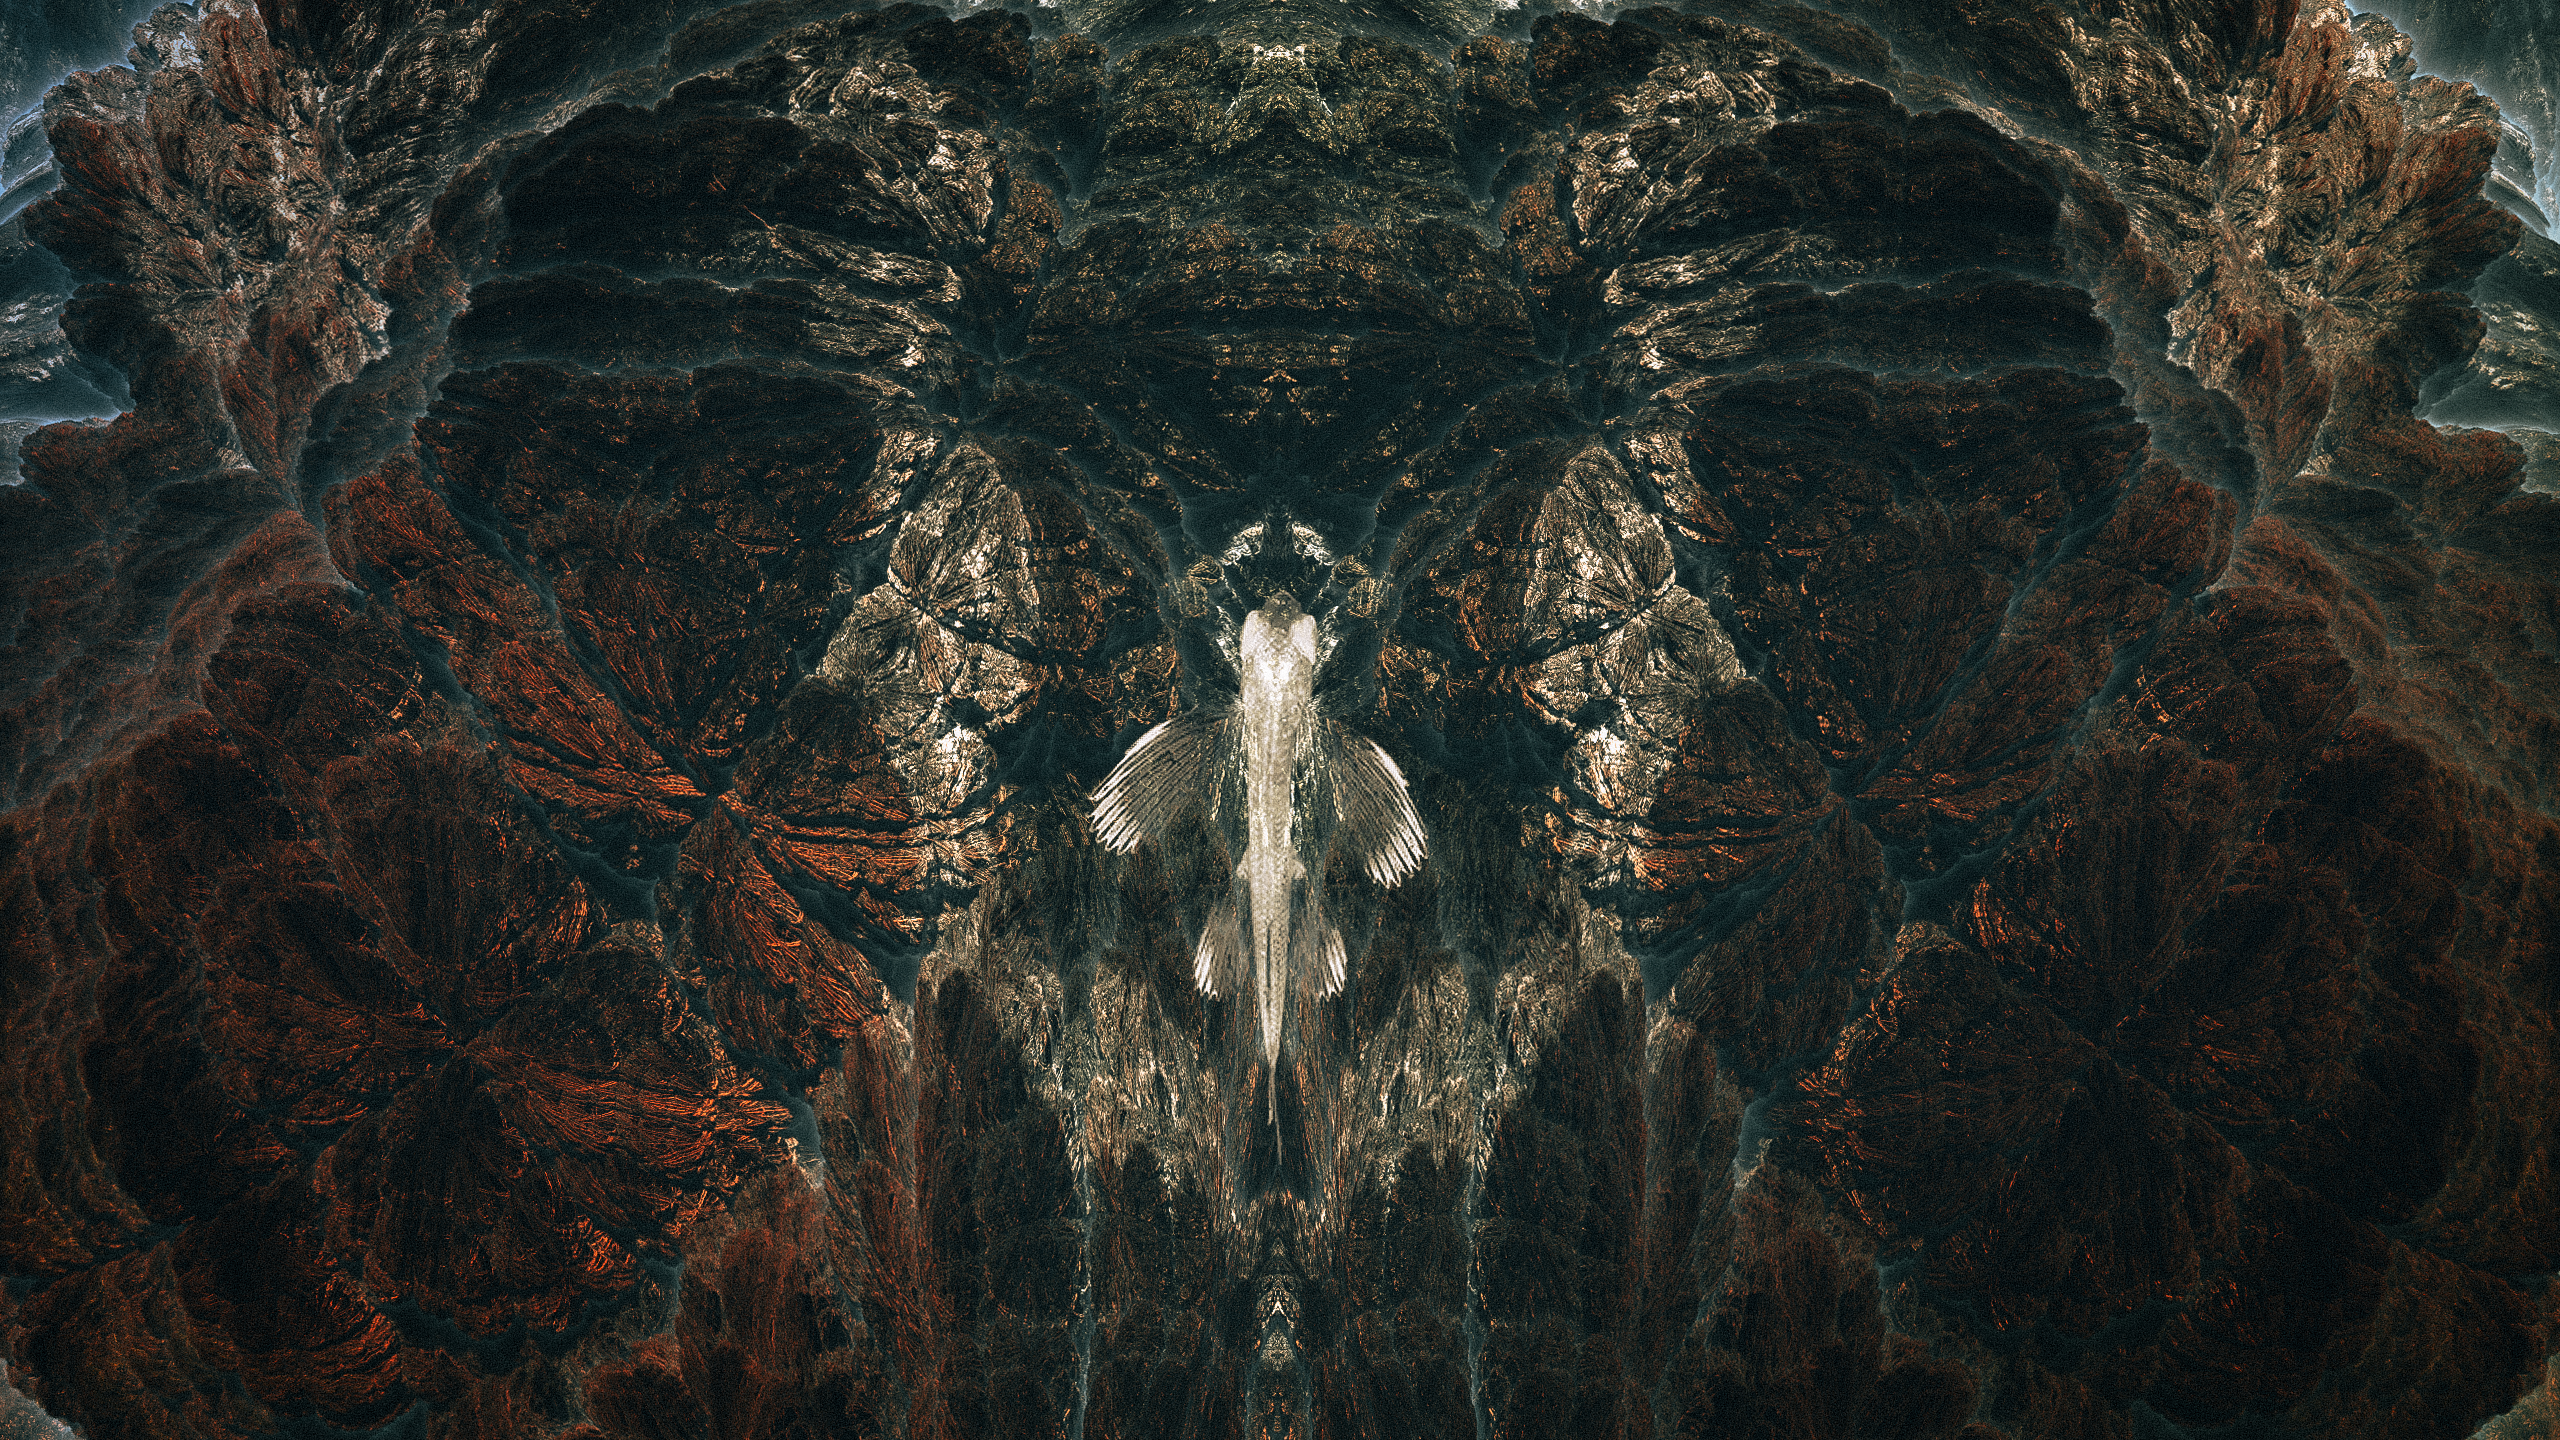 The Mandelbrot Loneliness Abstract Series by Nikita Kolbovskiy The Mandelbrot Loneliness Abstract Series by Nikita Kolbovskiy